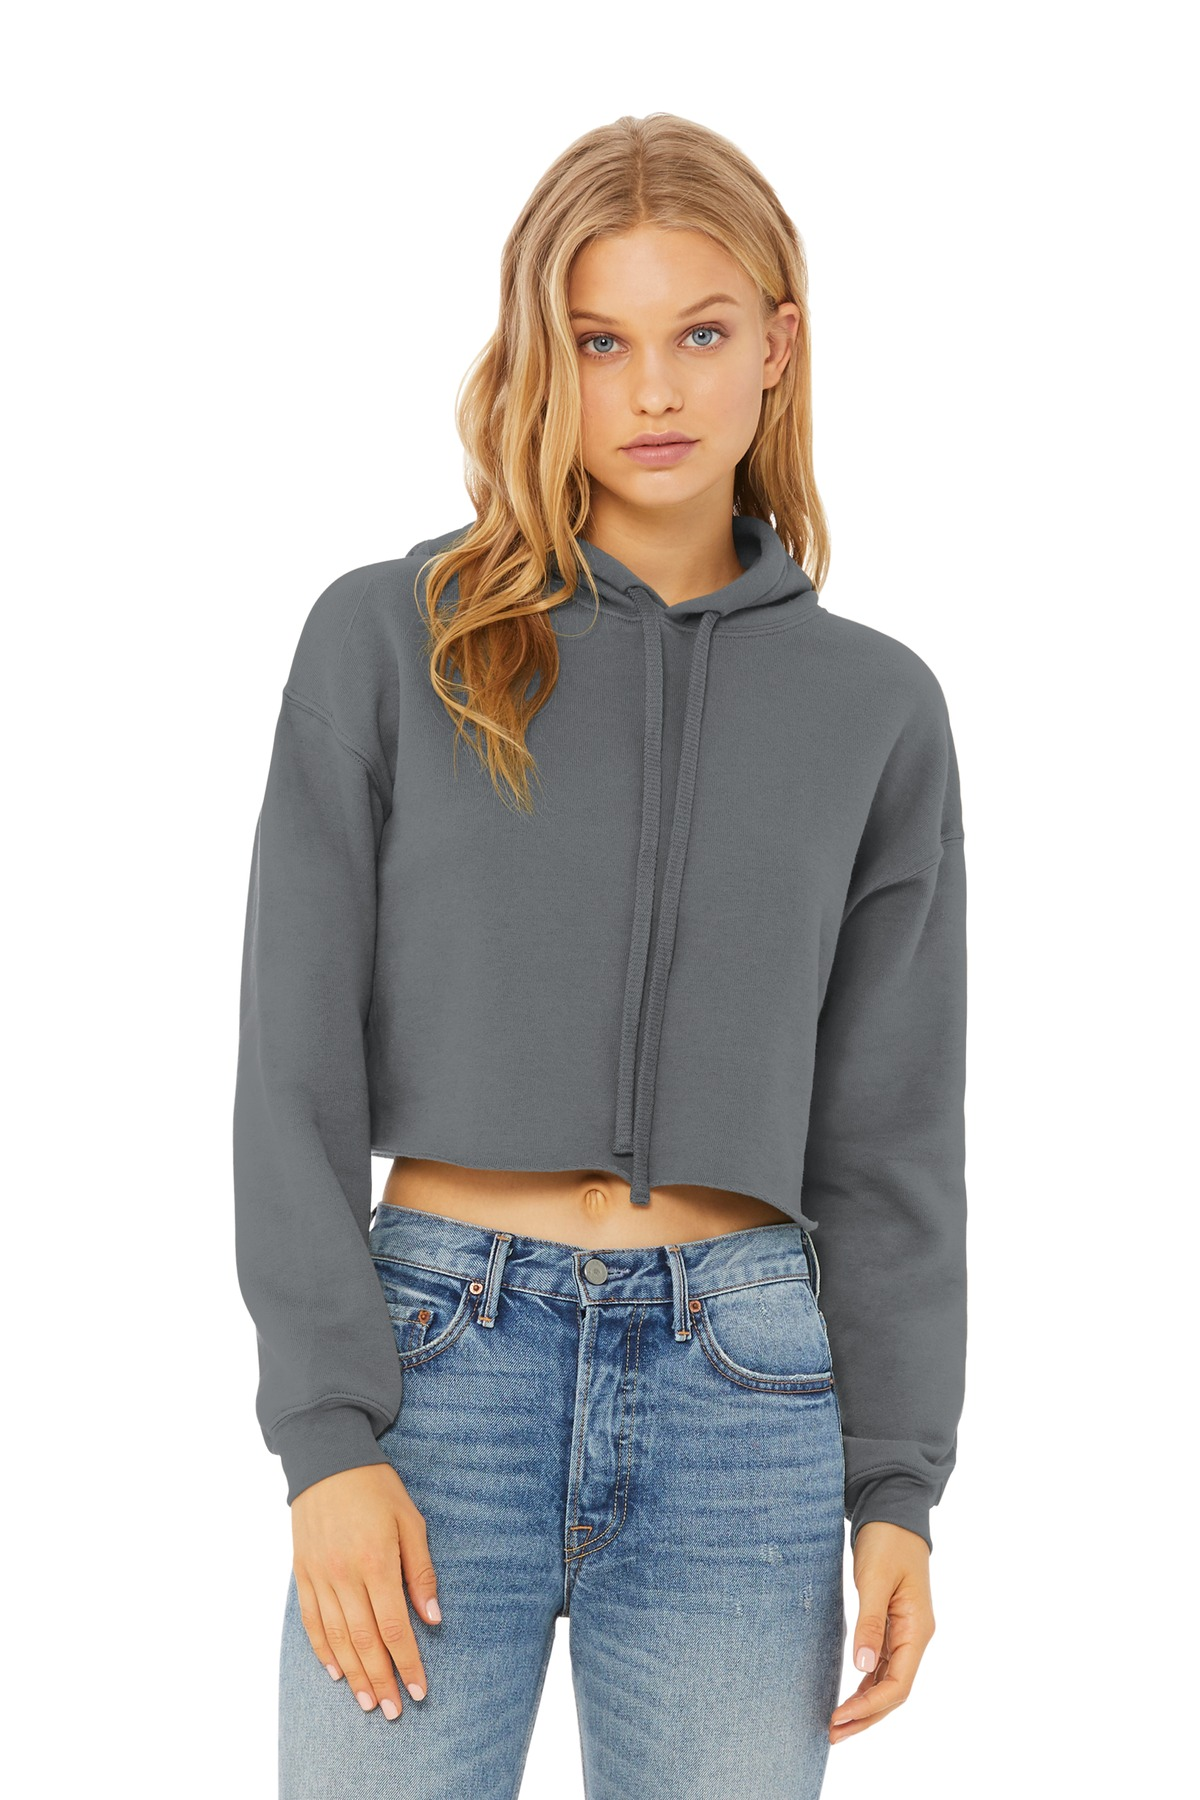 BELLA+CANVAS  ®  Women's Sponge Fleece Cropped Fleece Hoodie. BC7502 - Storm